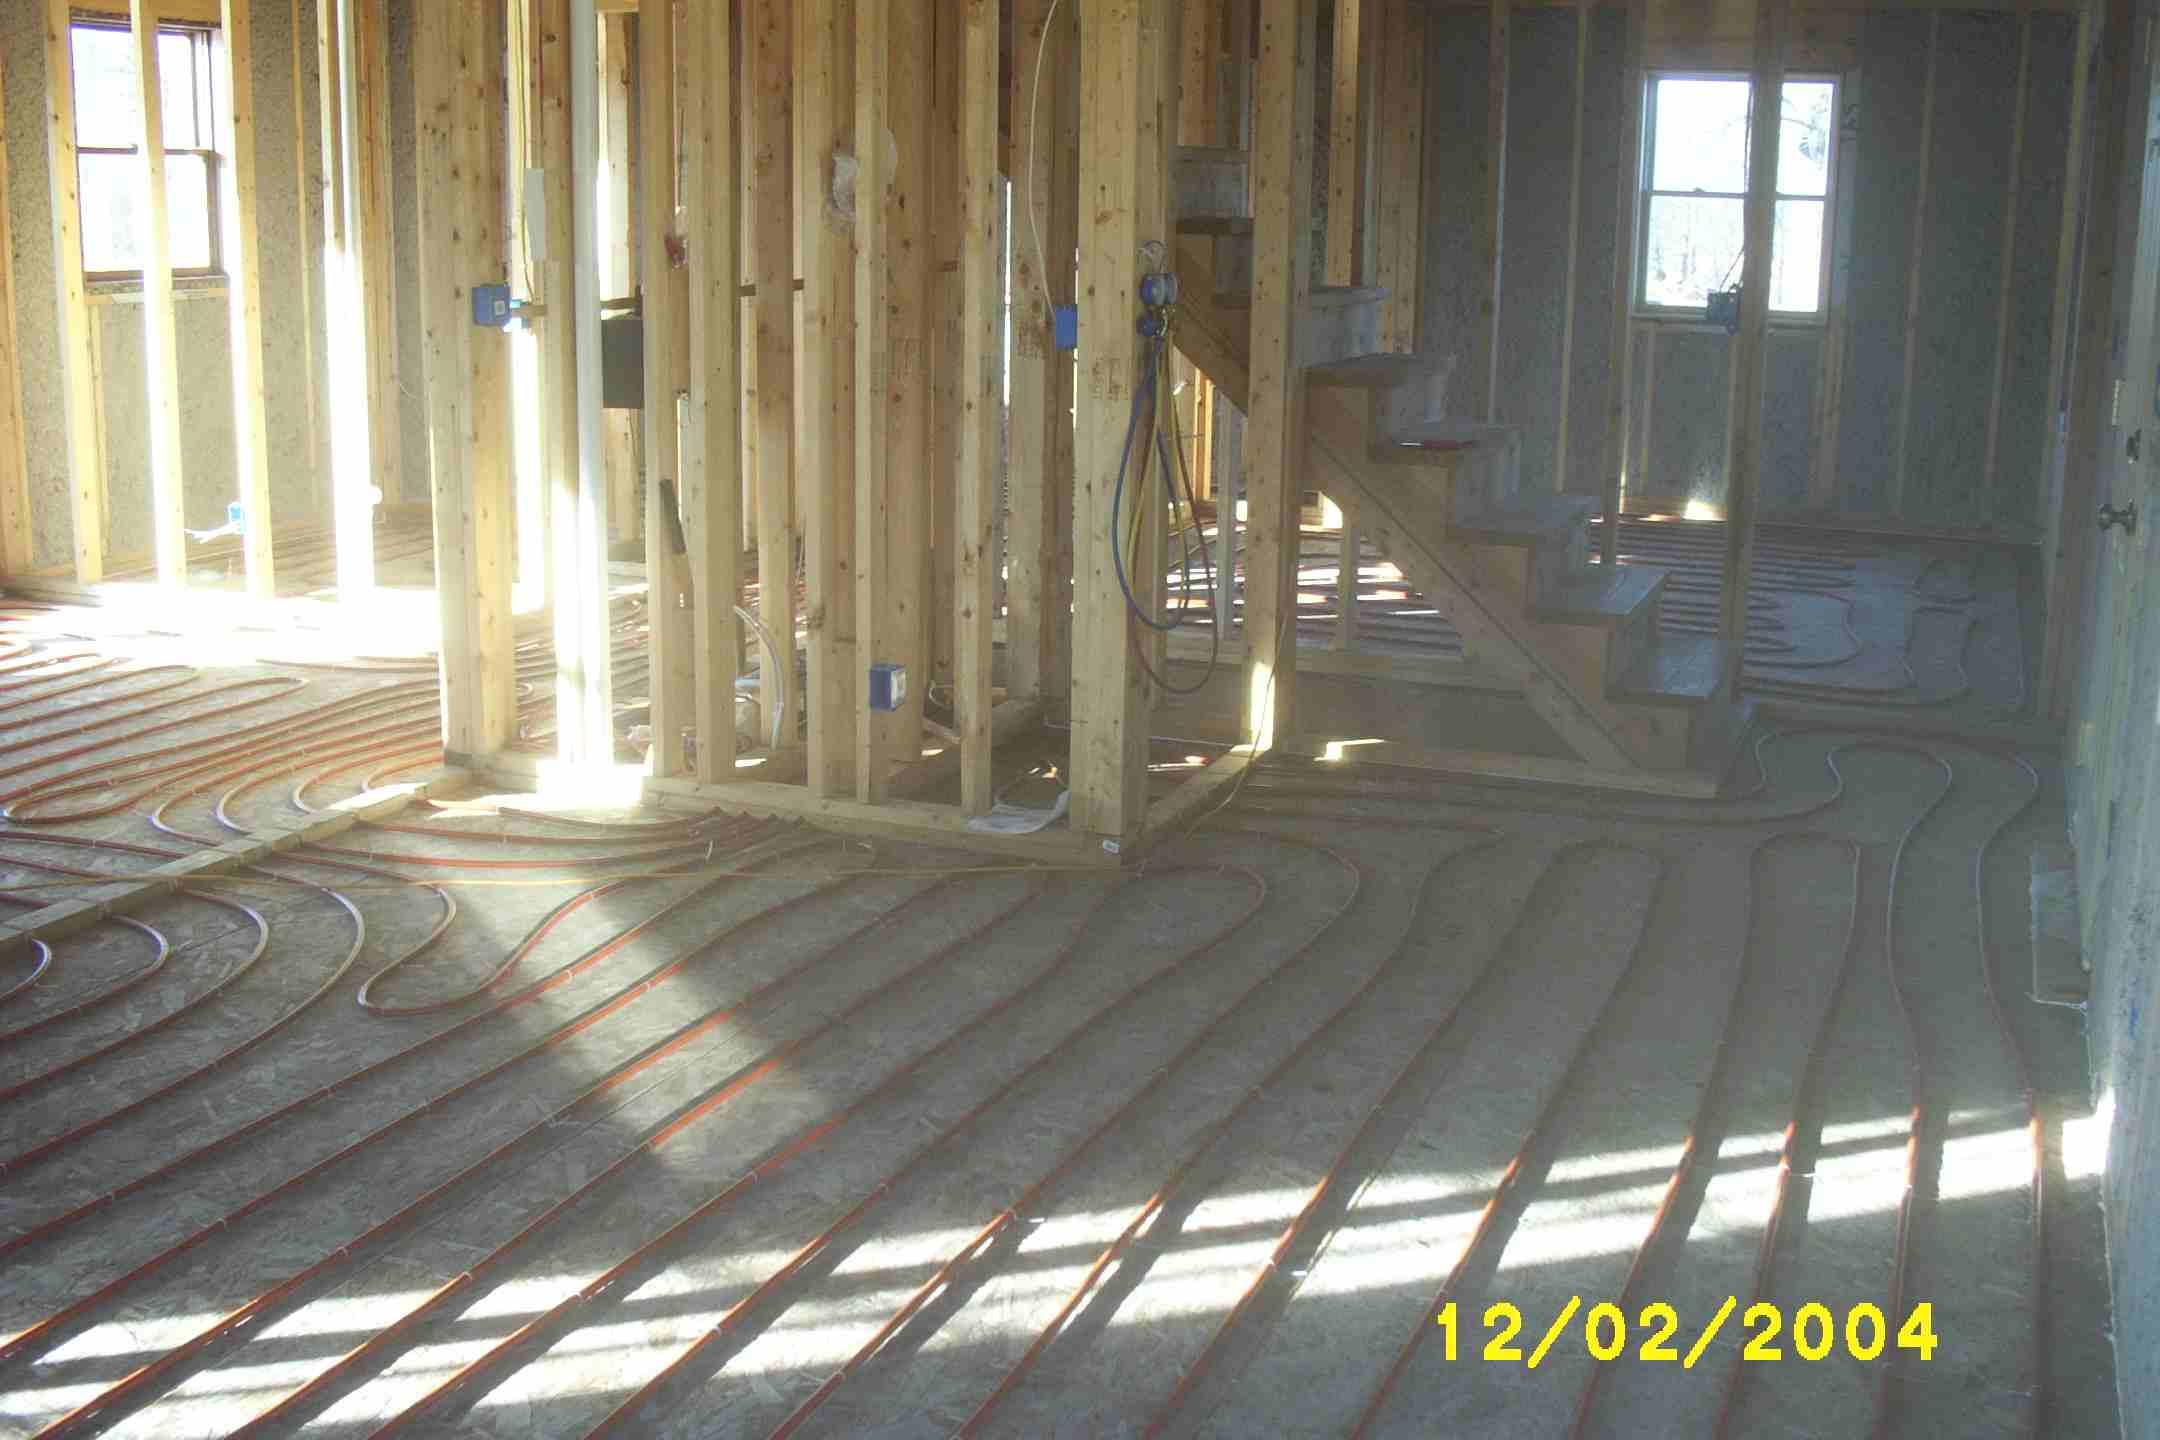 You can see tubing on the floor and newspaper insulation in the walls in this picture